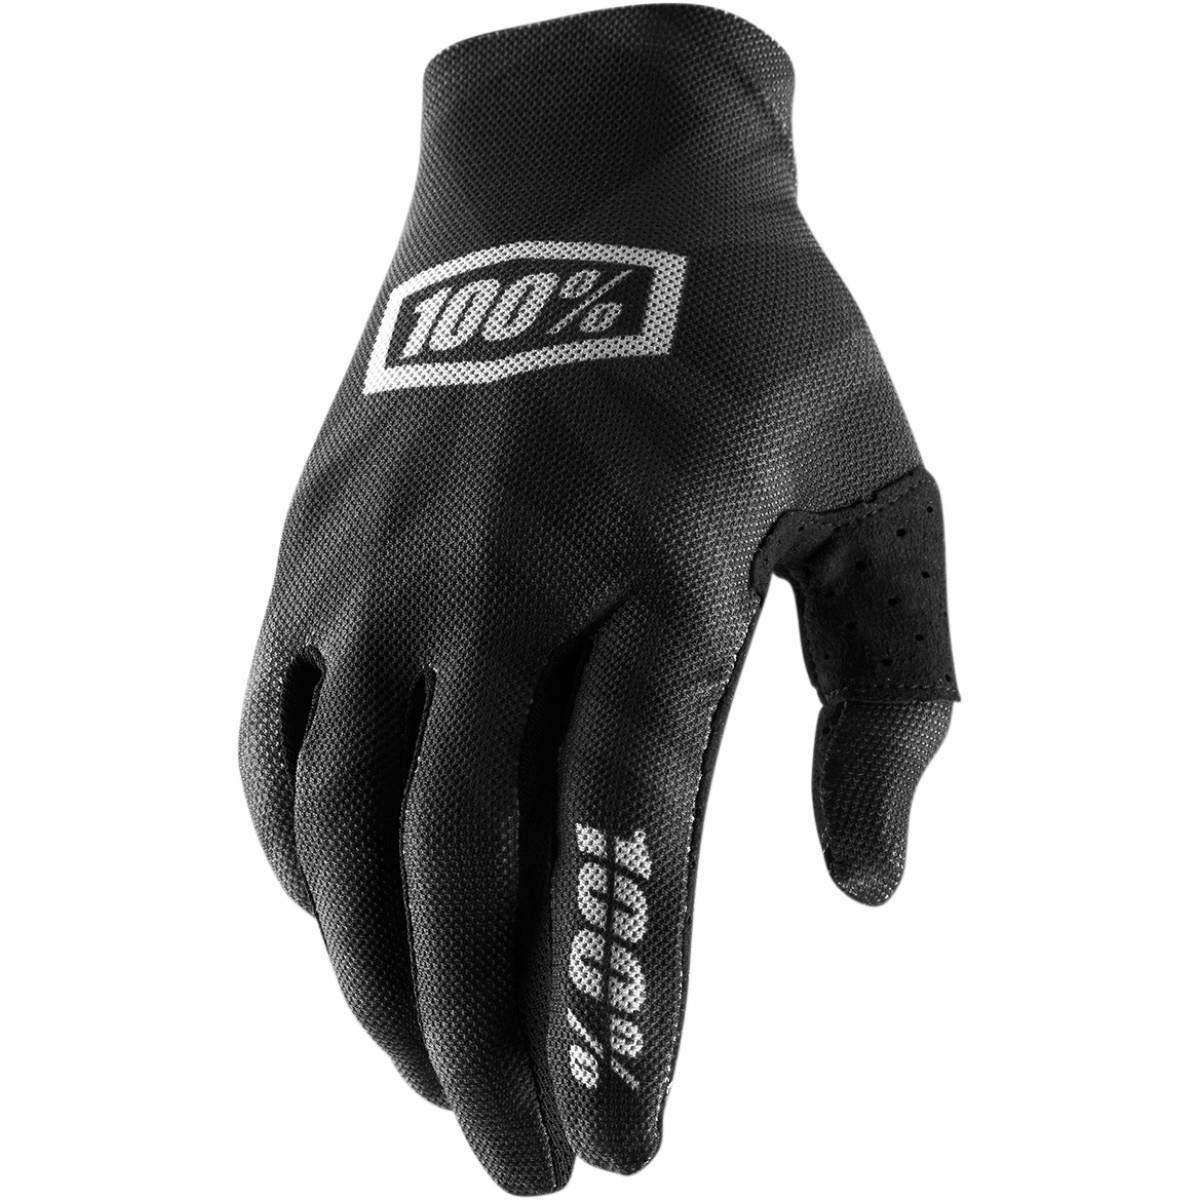 2X-Large Fluorescent Yellow//Black 100/% Celium 2 Mens Off-Road Motorcycle Gloves